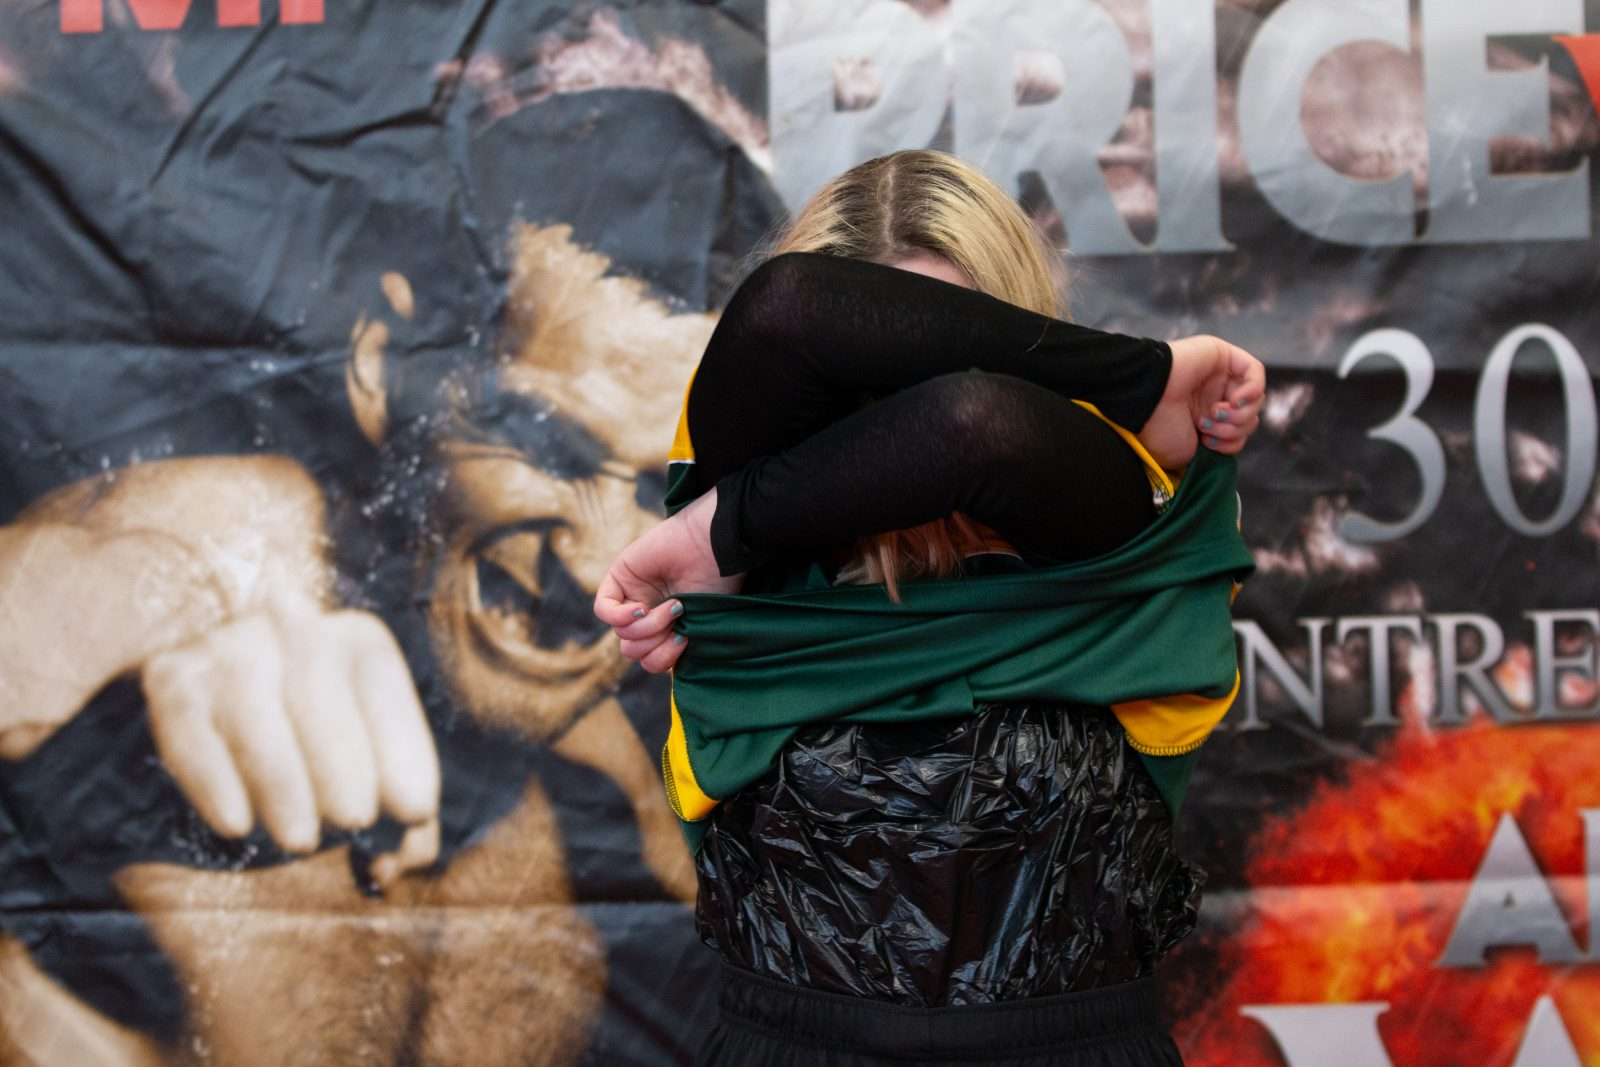 A person is removing a green and yellow sports top. They have a black long sleeved top underneath.